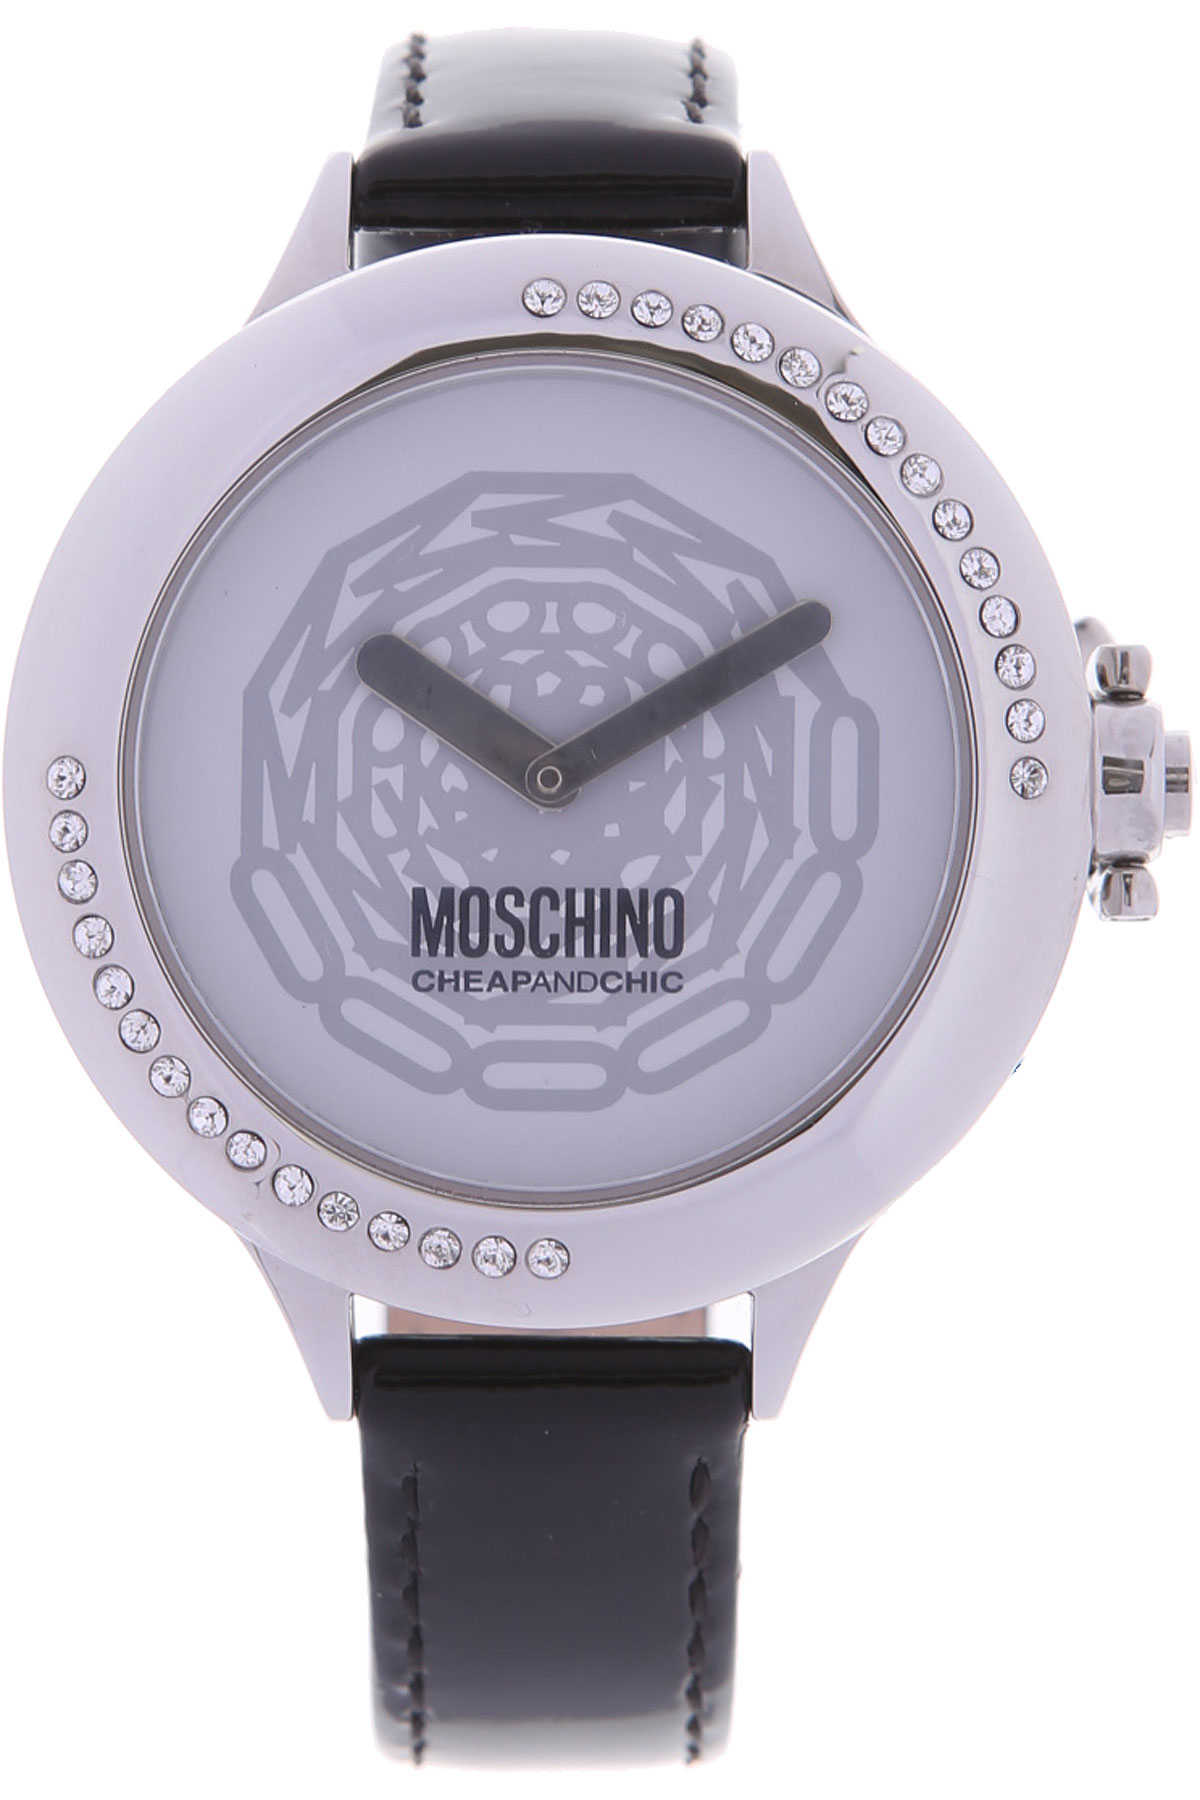 Moschino Watch for Women in Outlet Black USA - GOOFASH